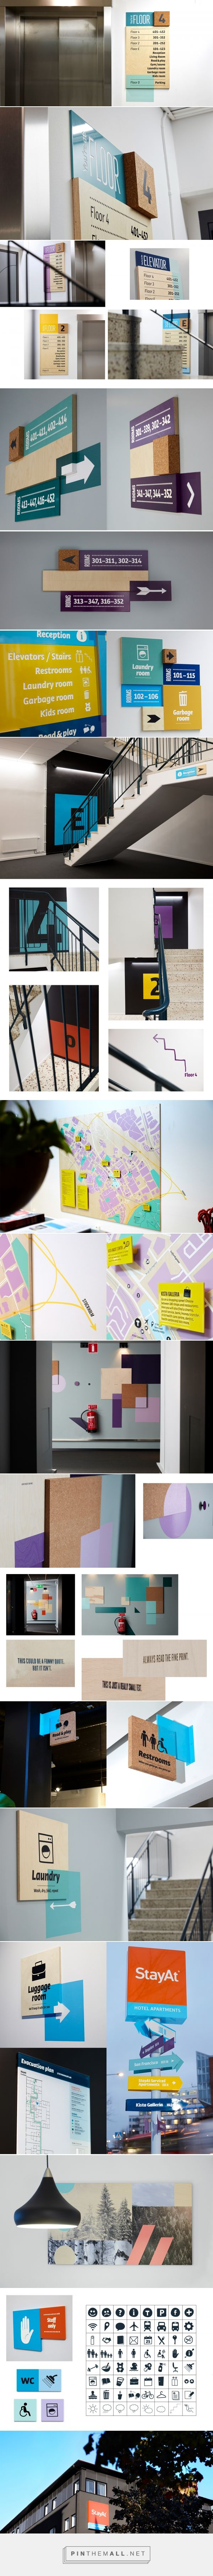 StayAt – Wayfinding & Branded Environment on Behance - created via https://pinthemall.net